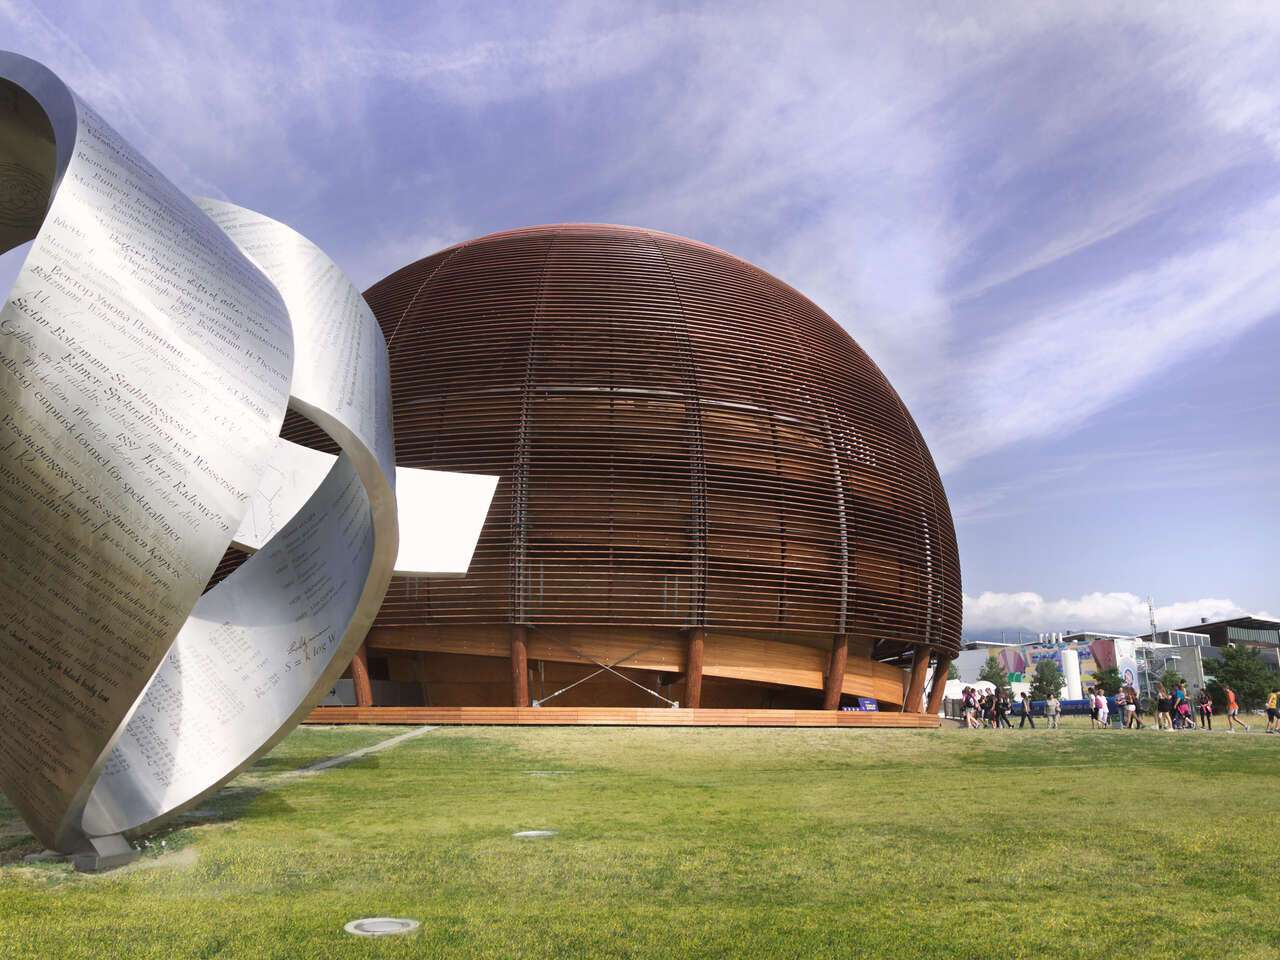 Exterior of CERN with round building and silver sculpture